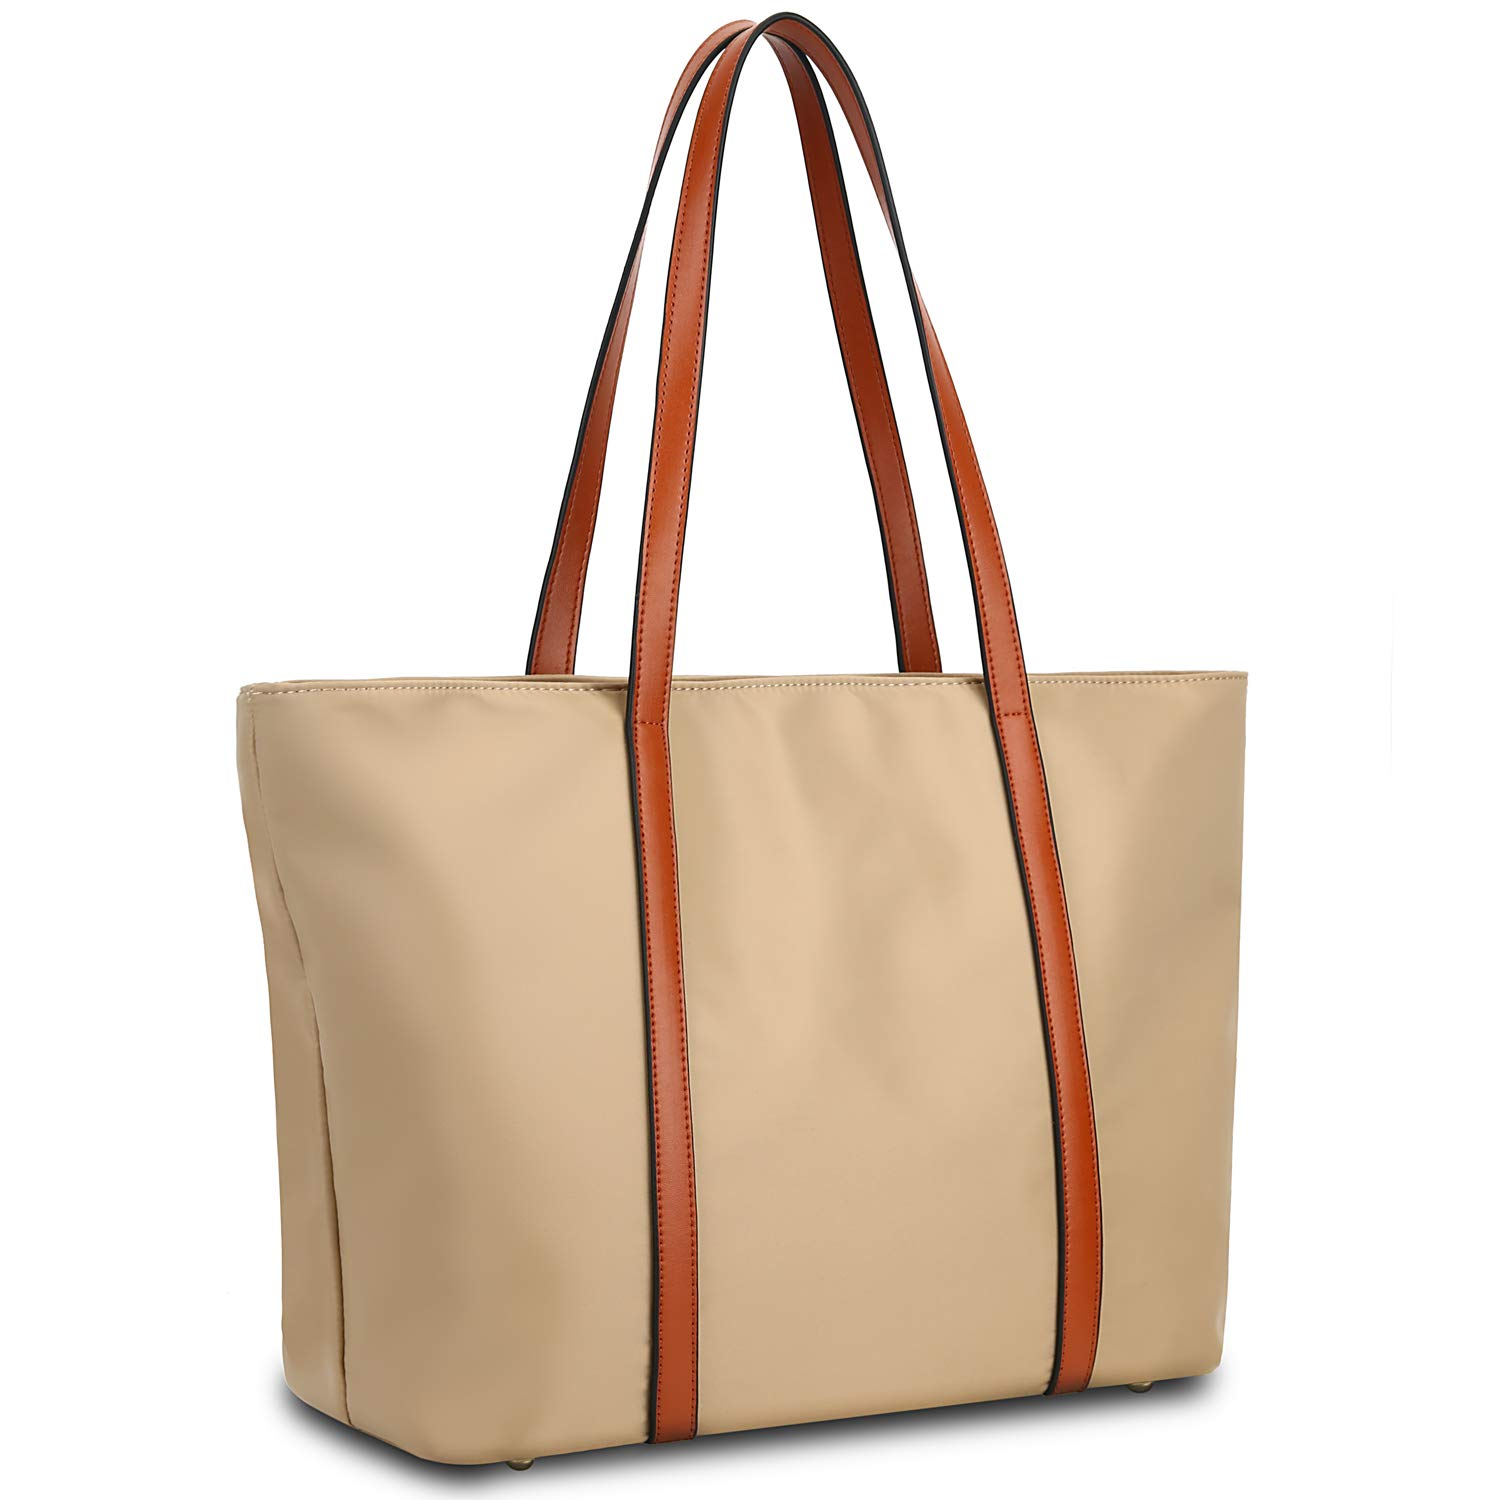 YALUXE Tote for Women Leather Nylon Shoulder Bag Women's Oxford Nylon Large Capacity Work fit 15.6 inch brown&Tan